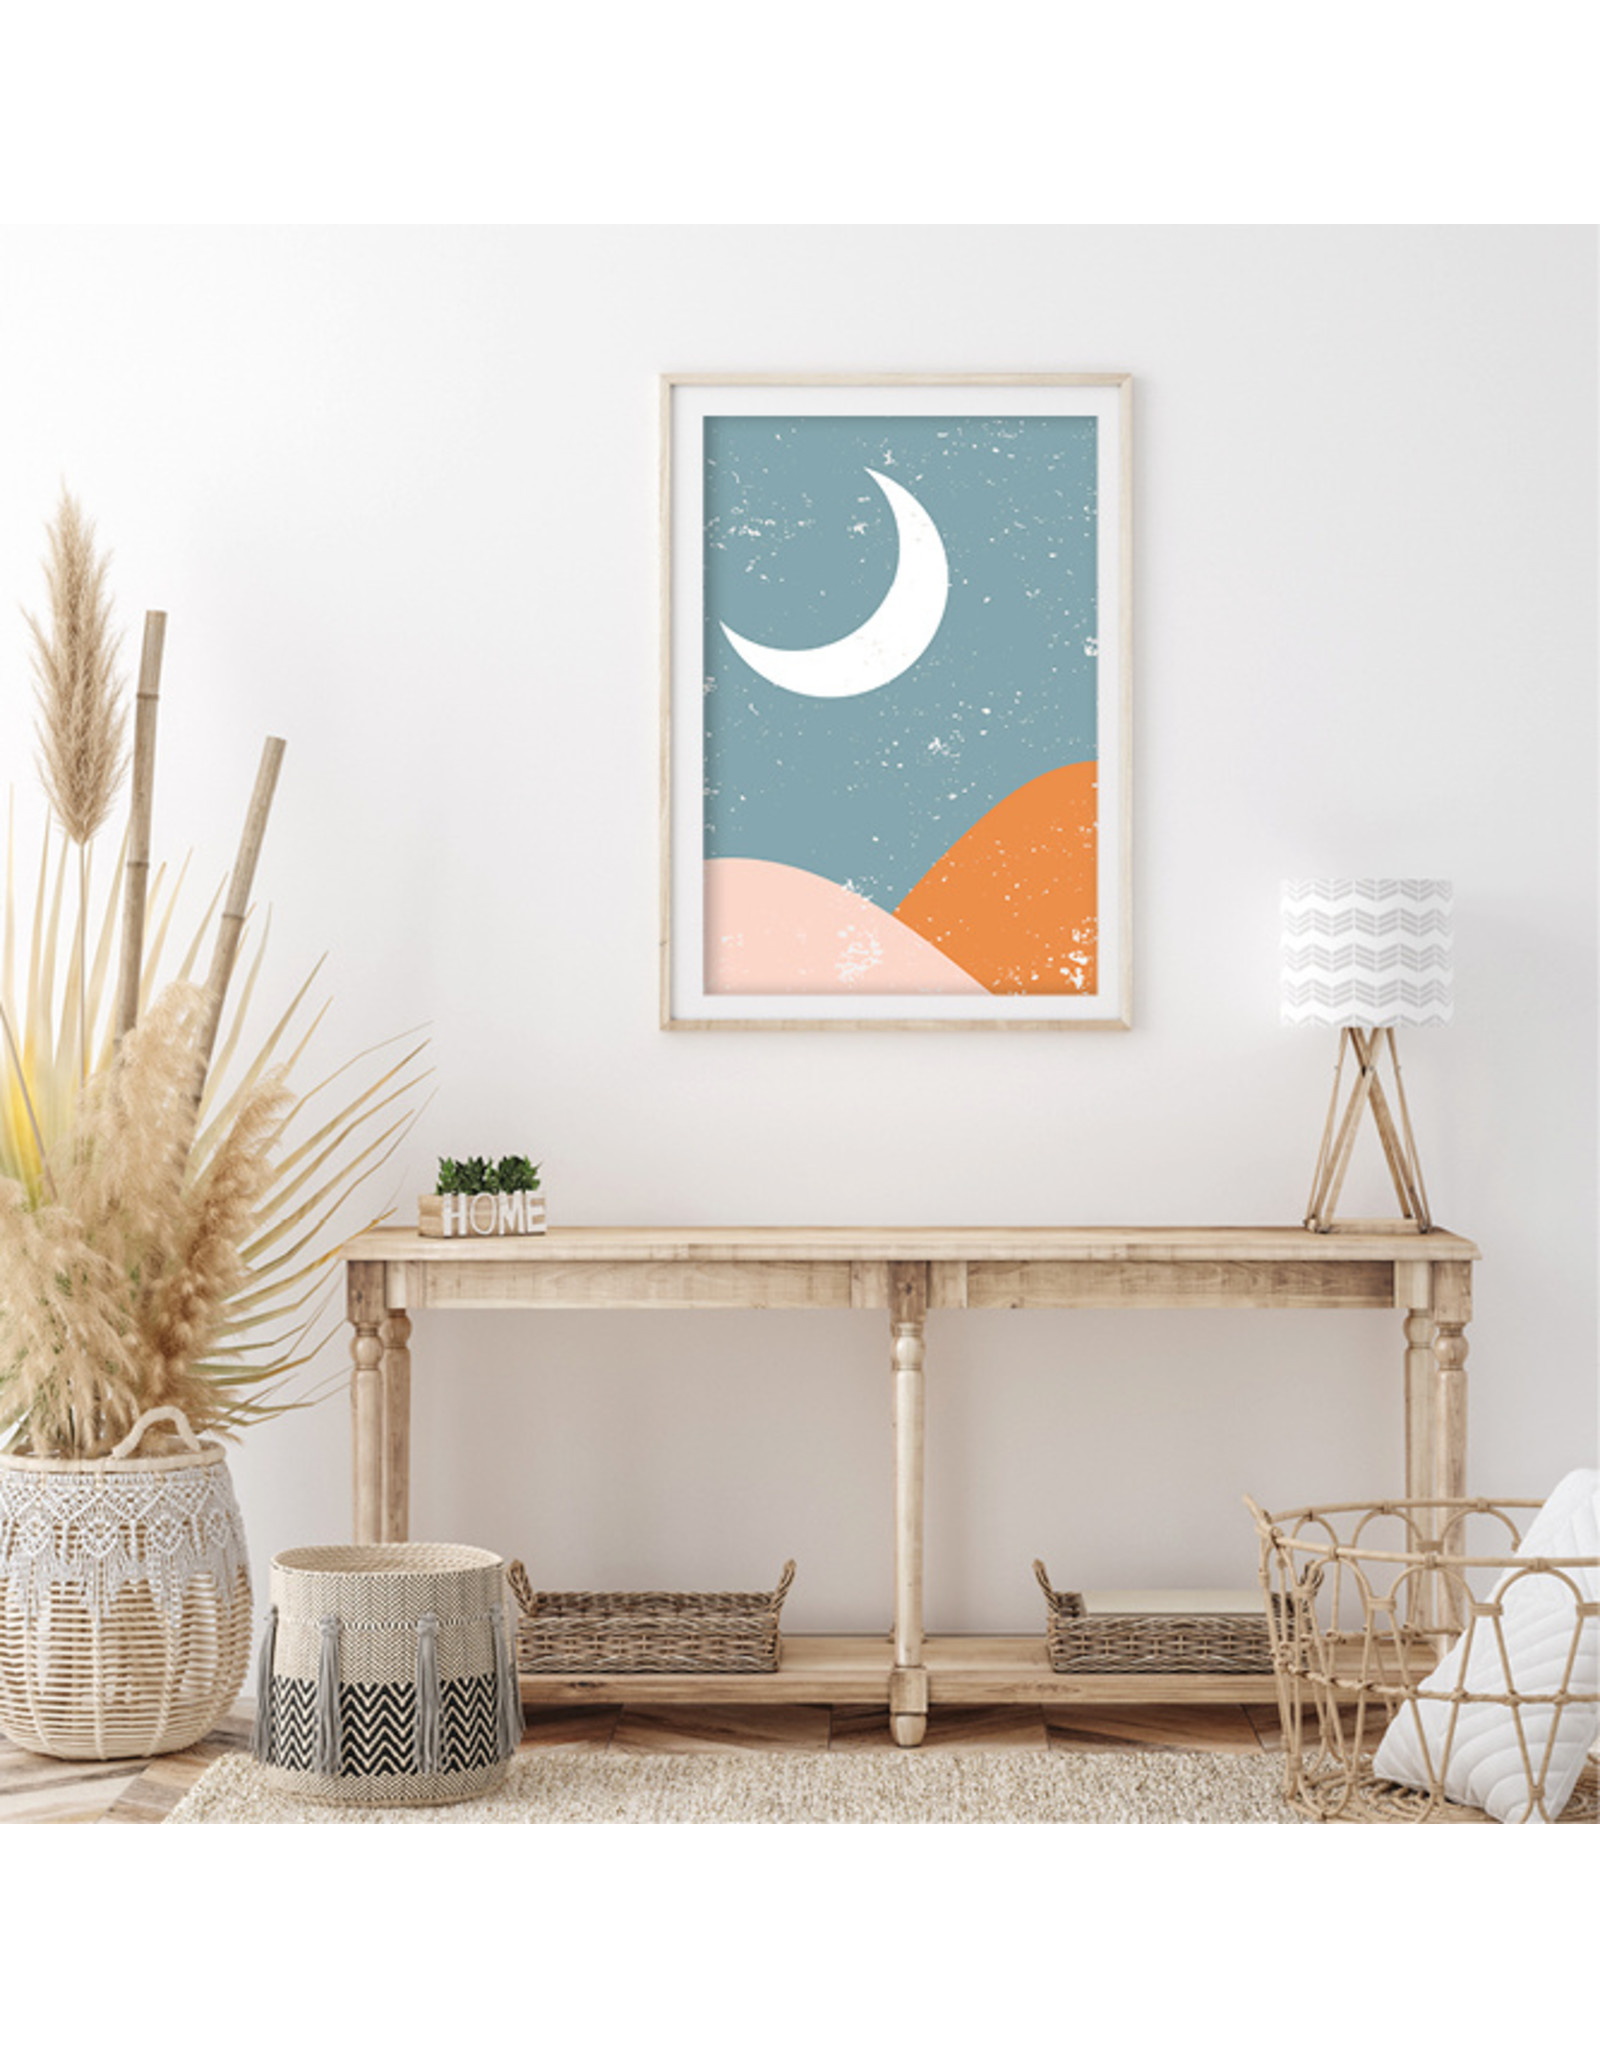 Dunnebier Home Poster Nighttime Graphic